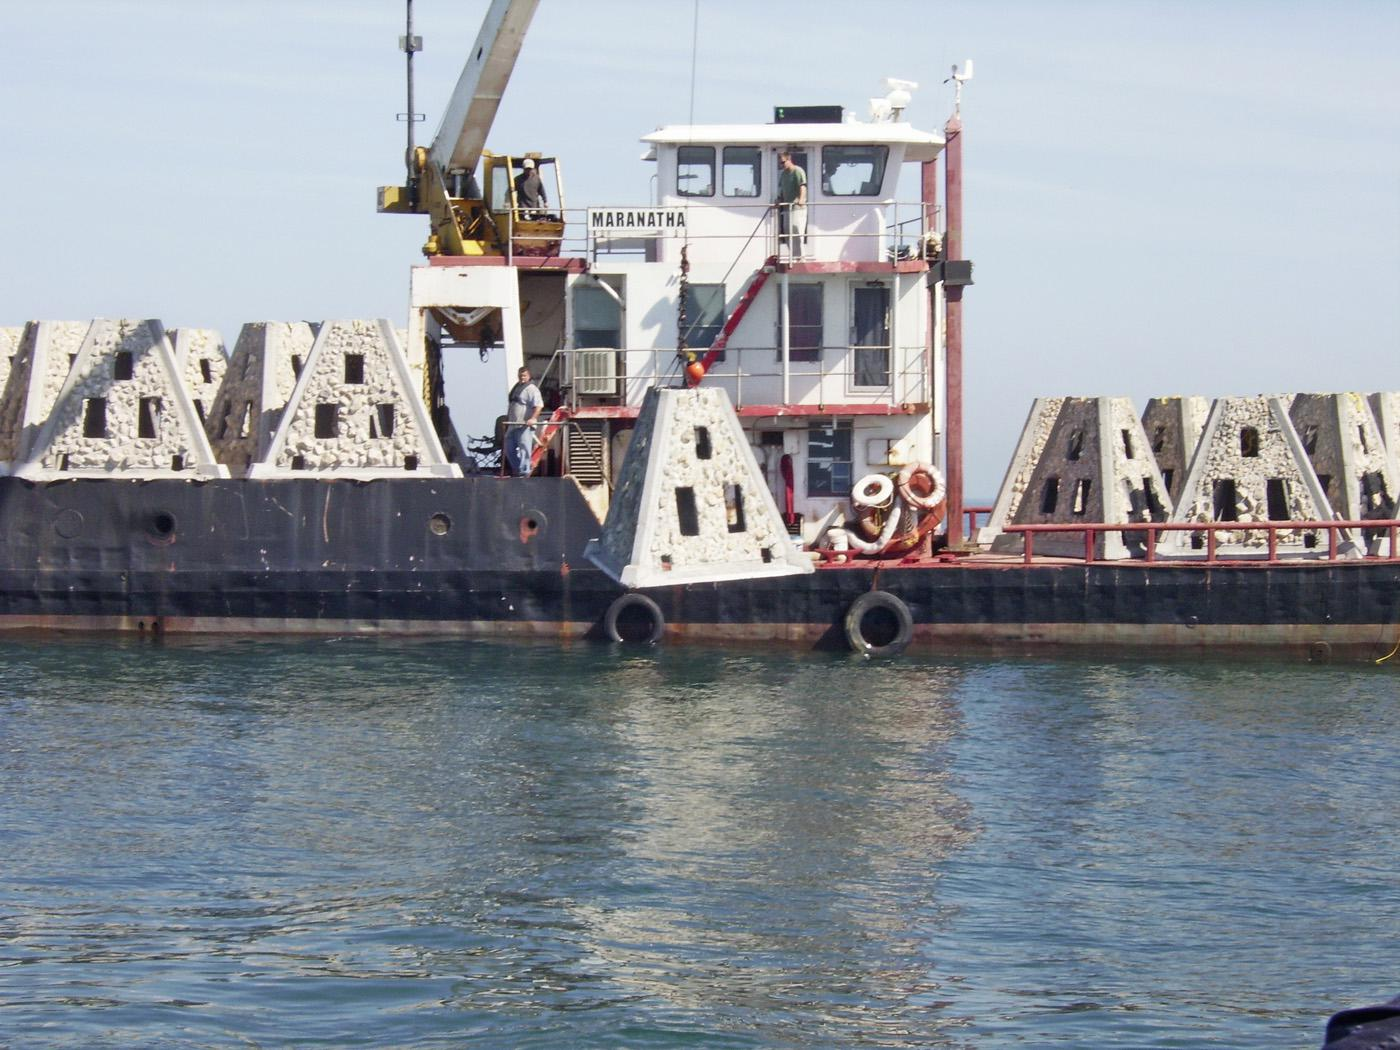 Artificial reefs provide a place of refuge for red snapper and Mississippi State University is researching the role that the reefs play in enhancing fisheries targeting red snapper. (Photo by Mississippi Department of Marine Resources)